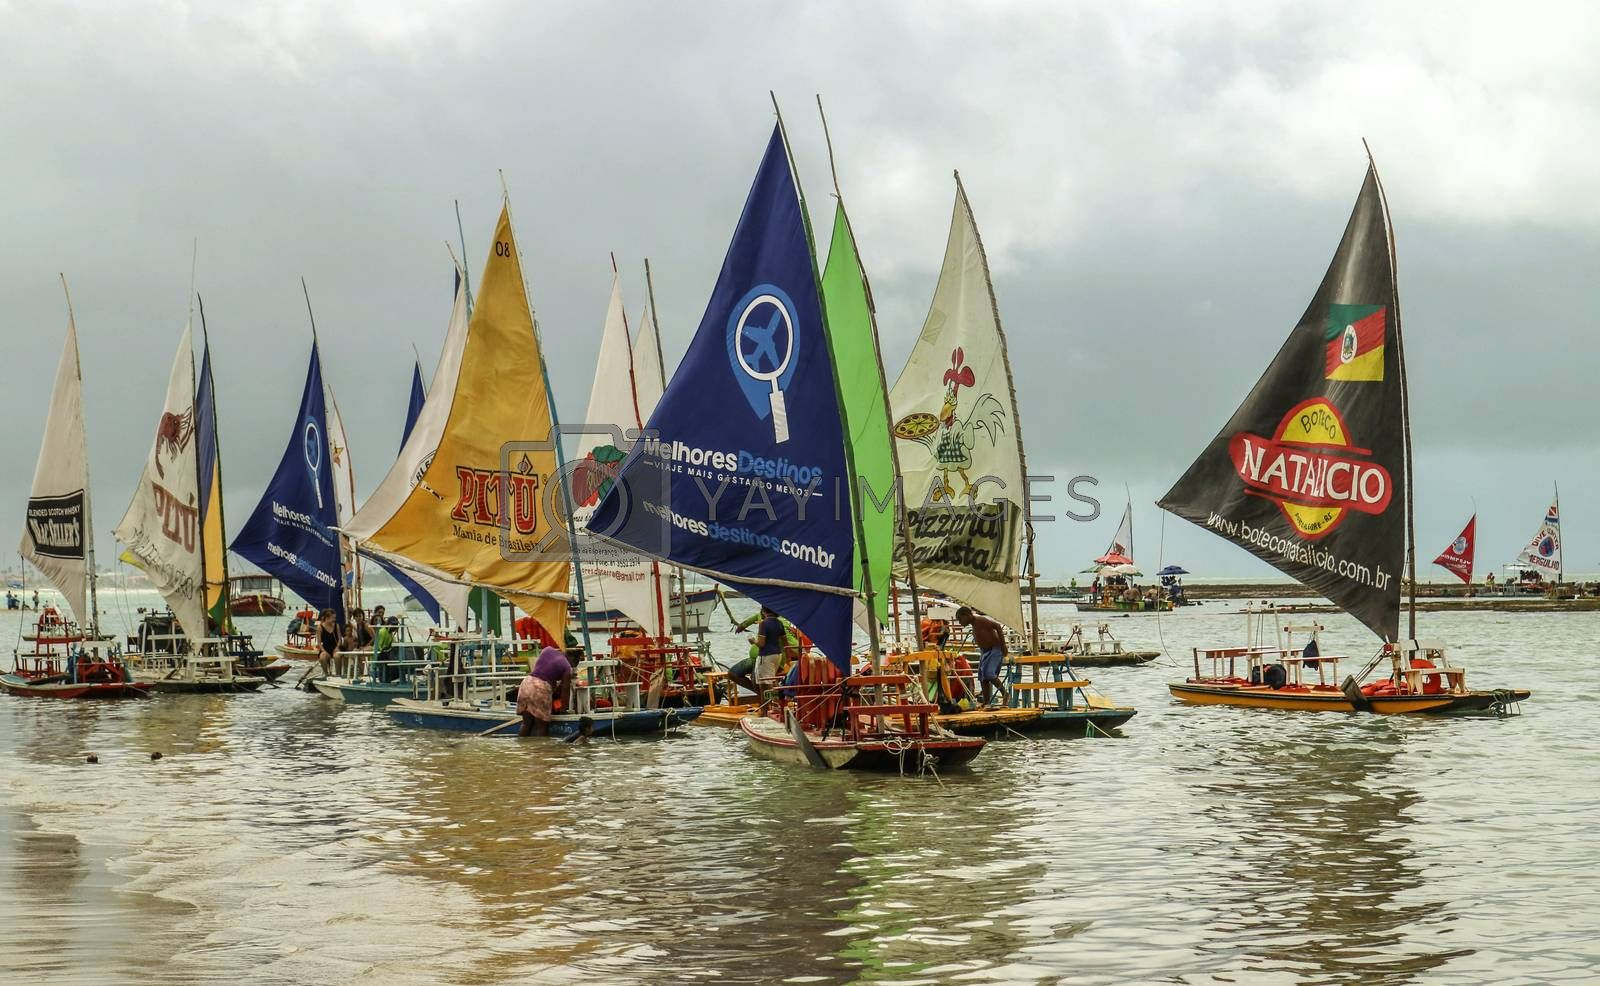 Pernambuco, Brazil July 6, 2016: An unidentified group of people in Chicken Beach with typical sail boats in Ipojuca City, northeast Brazil